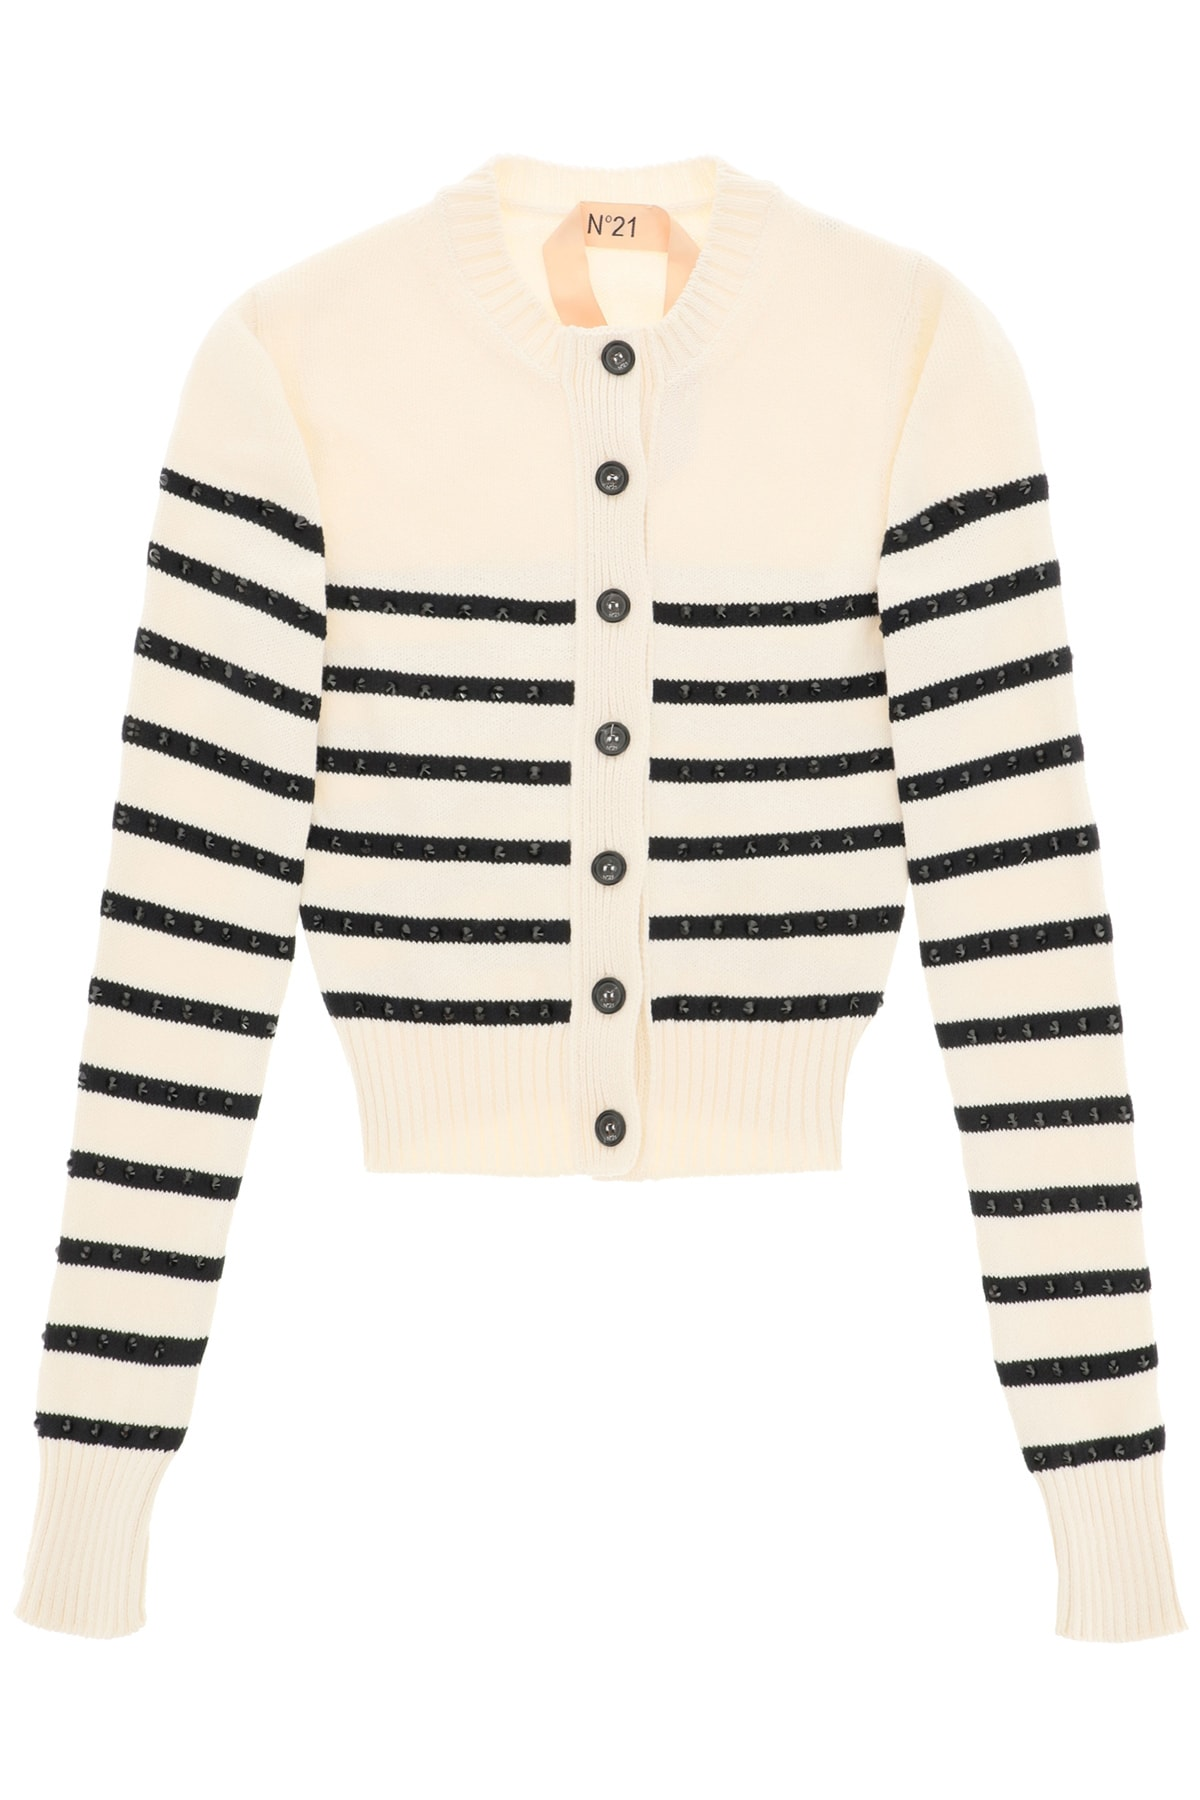 N°21 STRIPED CARDIGAN WITH CRYSTALS